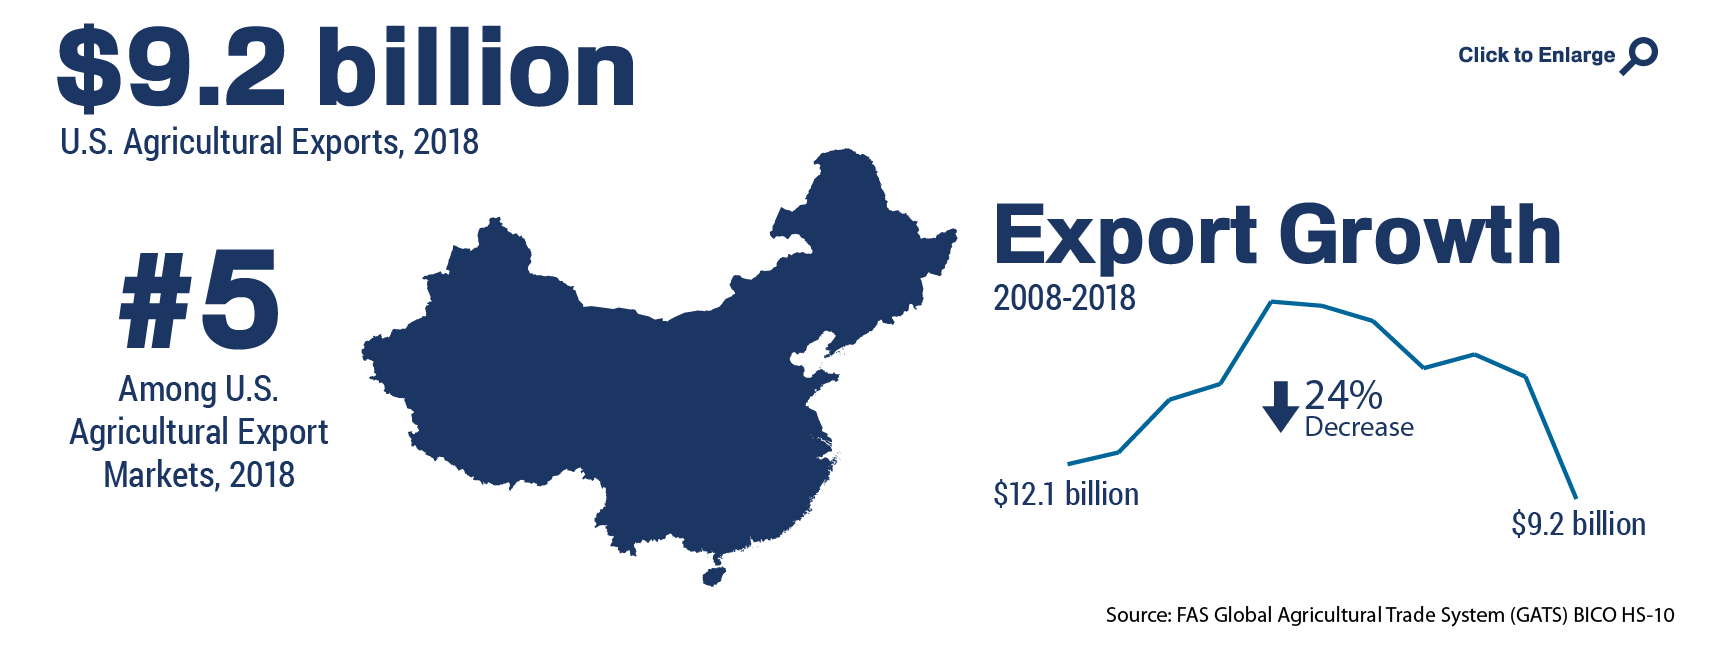 Infographic showing the ranking and total of U.S. agricultural trade to China in 2018